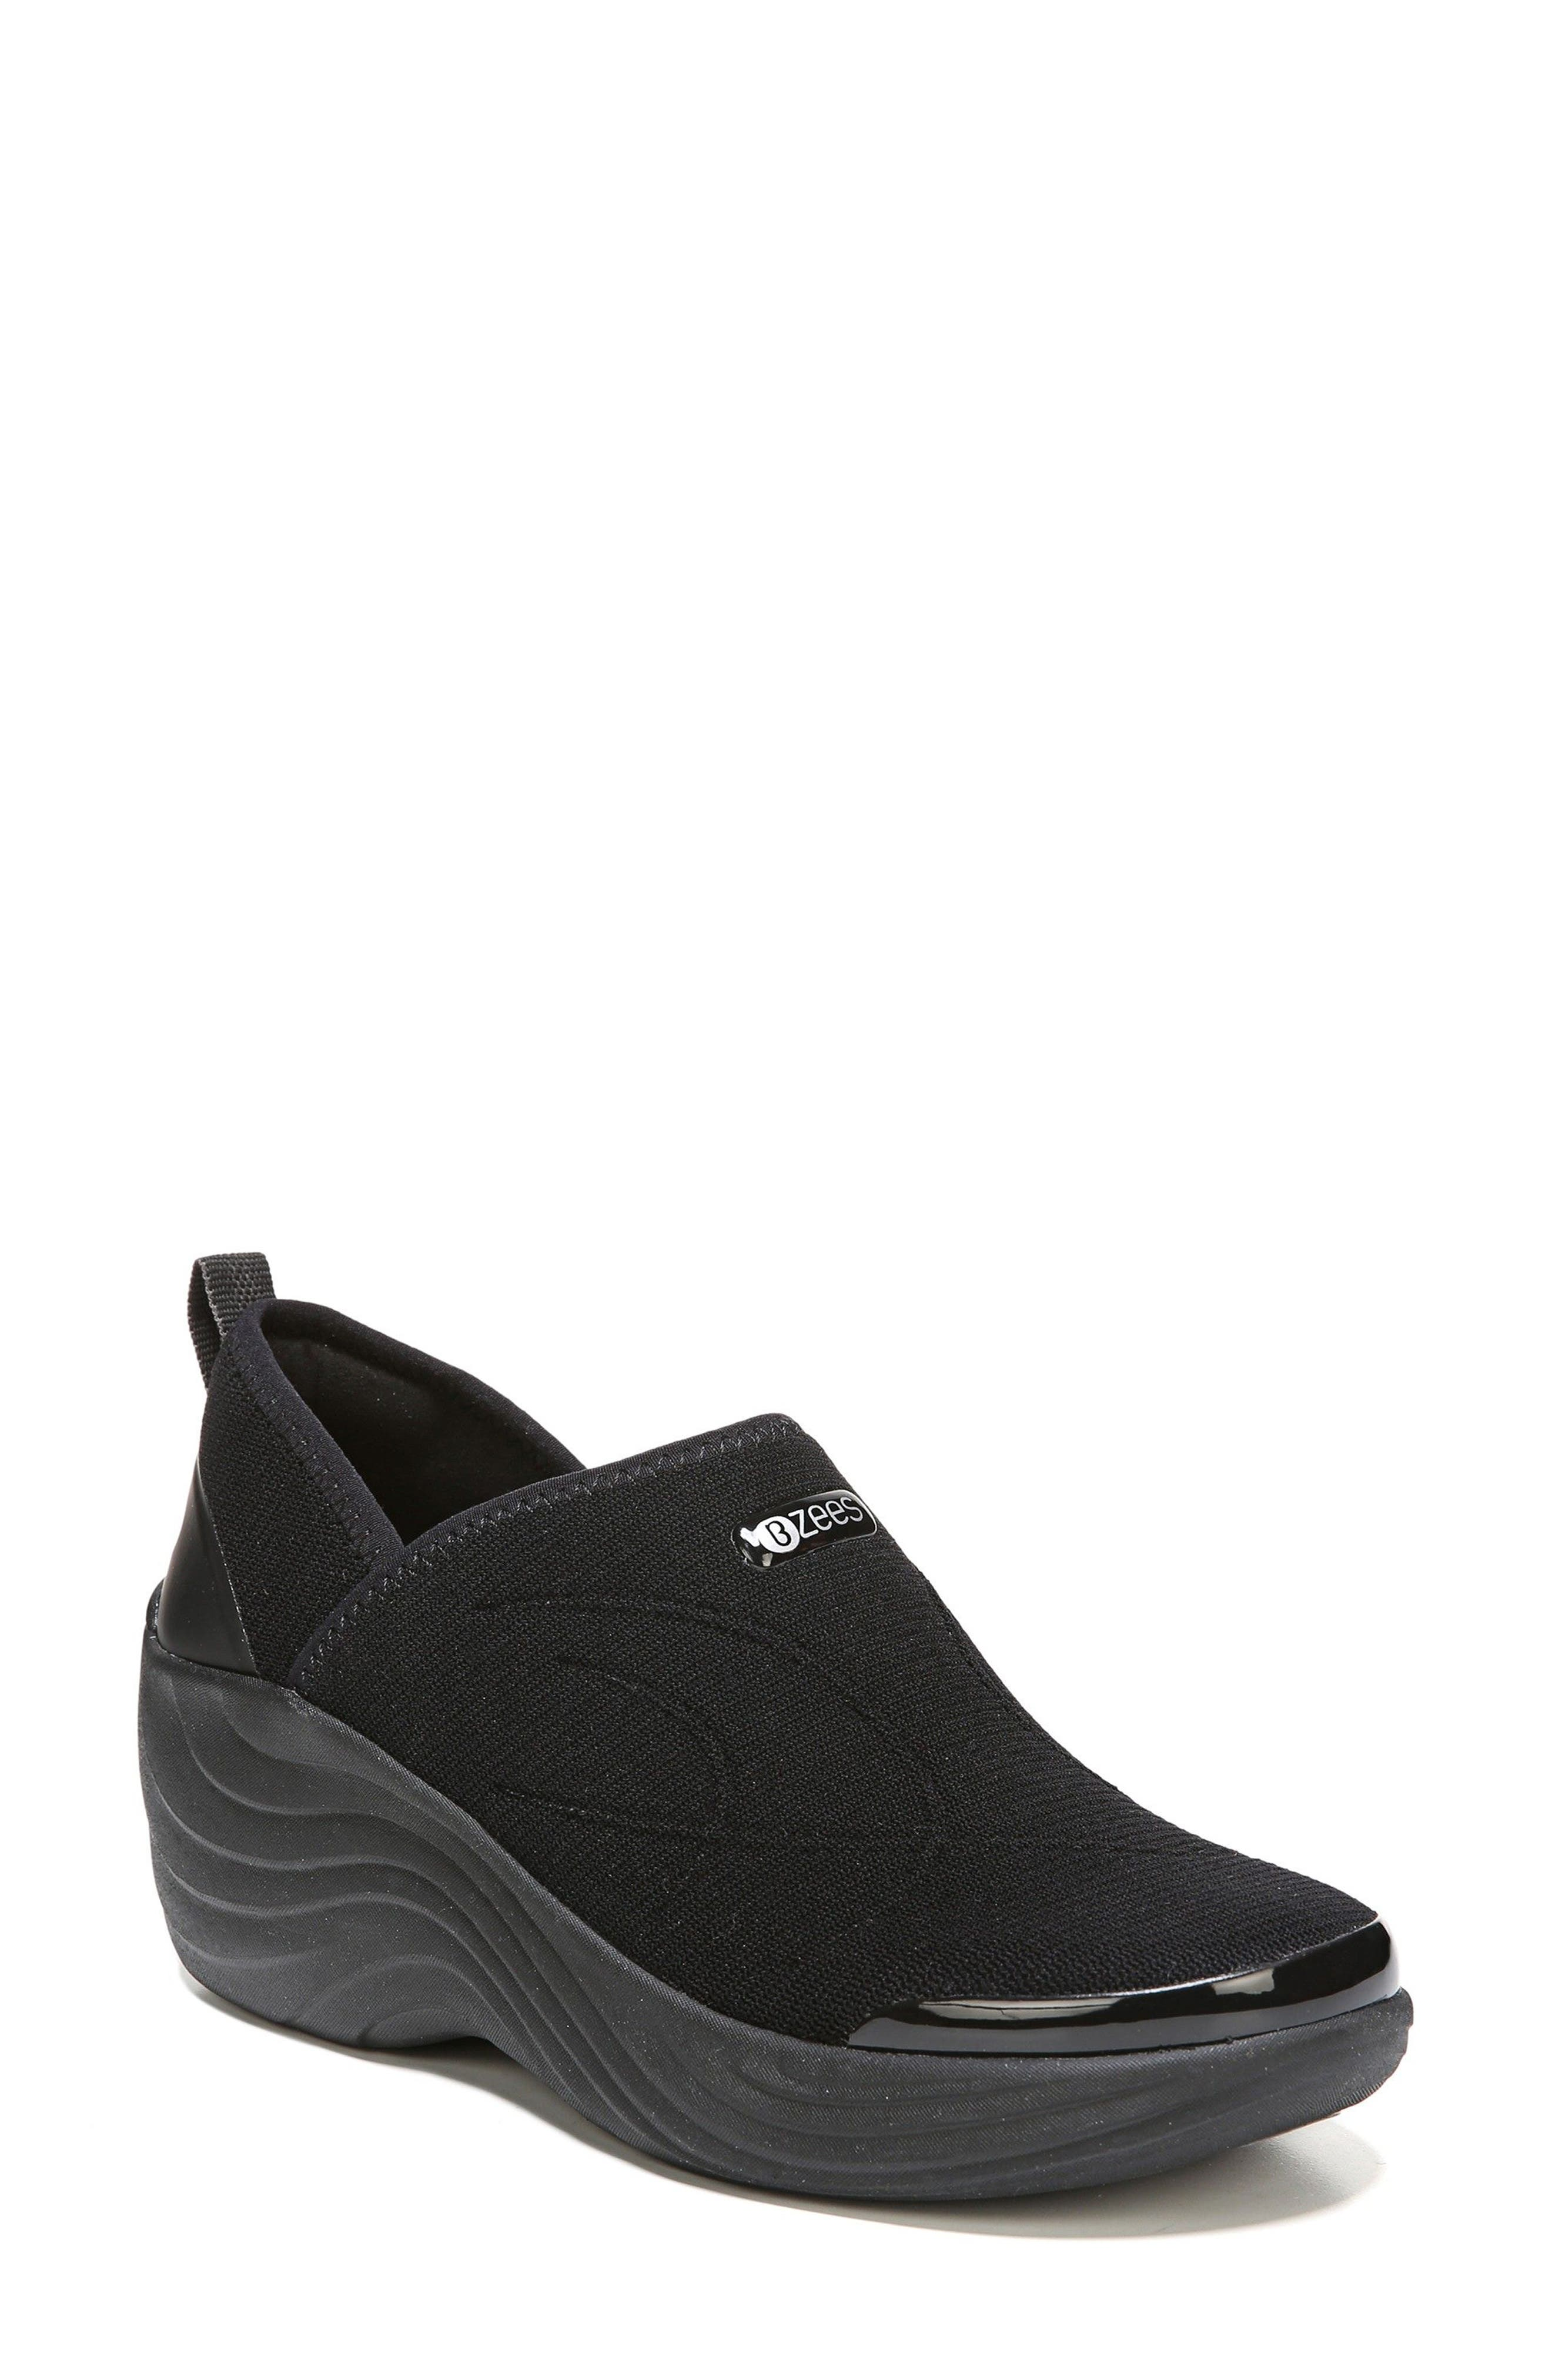 Zsa Zsa Wedge Sneaker,                         Main,                         color, BLACK FABRIC